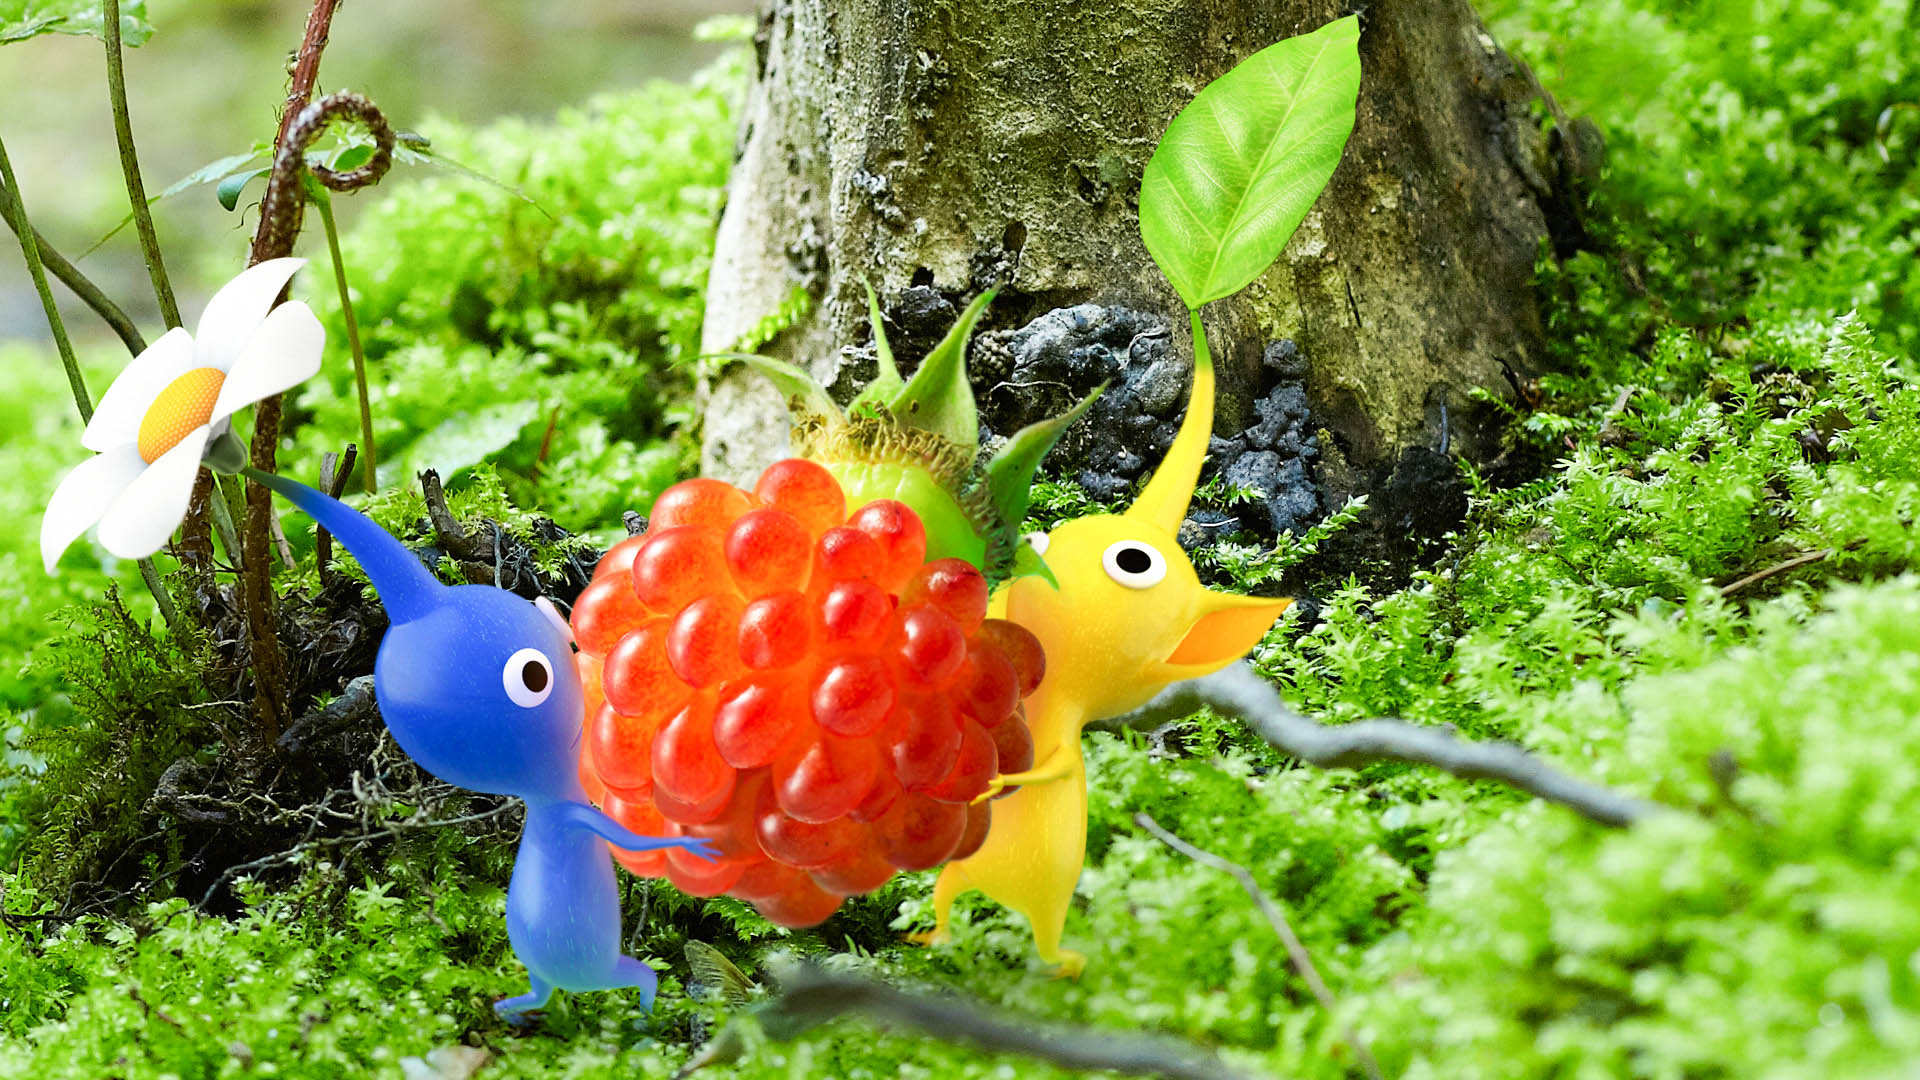 Pikmin New Amazing Wallpapers High Resolution   All HD Wallpapers 1920x1080